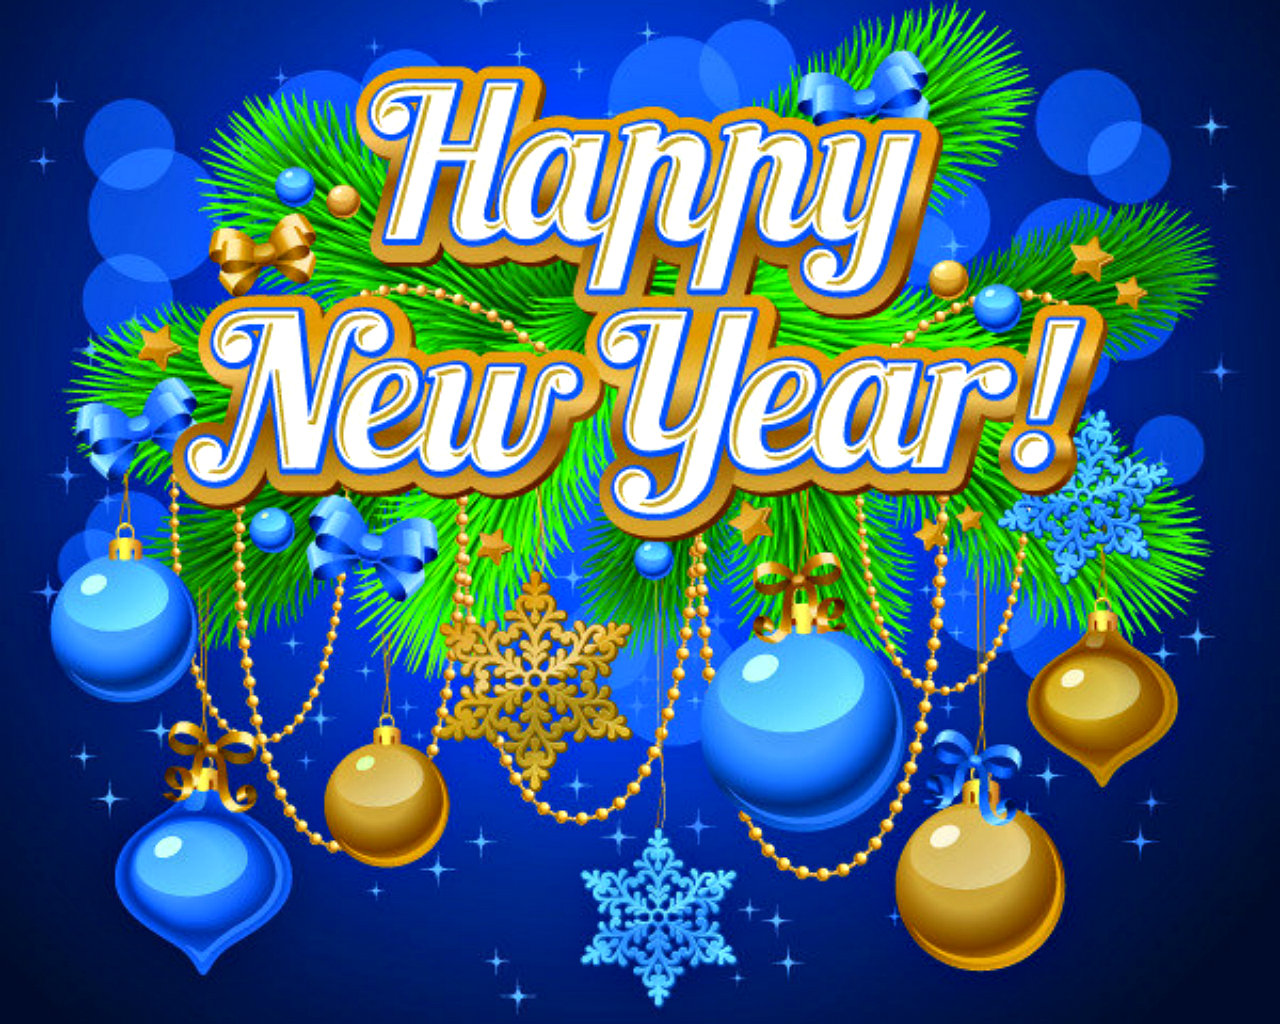 Free Download D Happy New Year Wallpaper 1280x1024 For Your